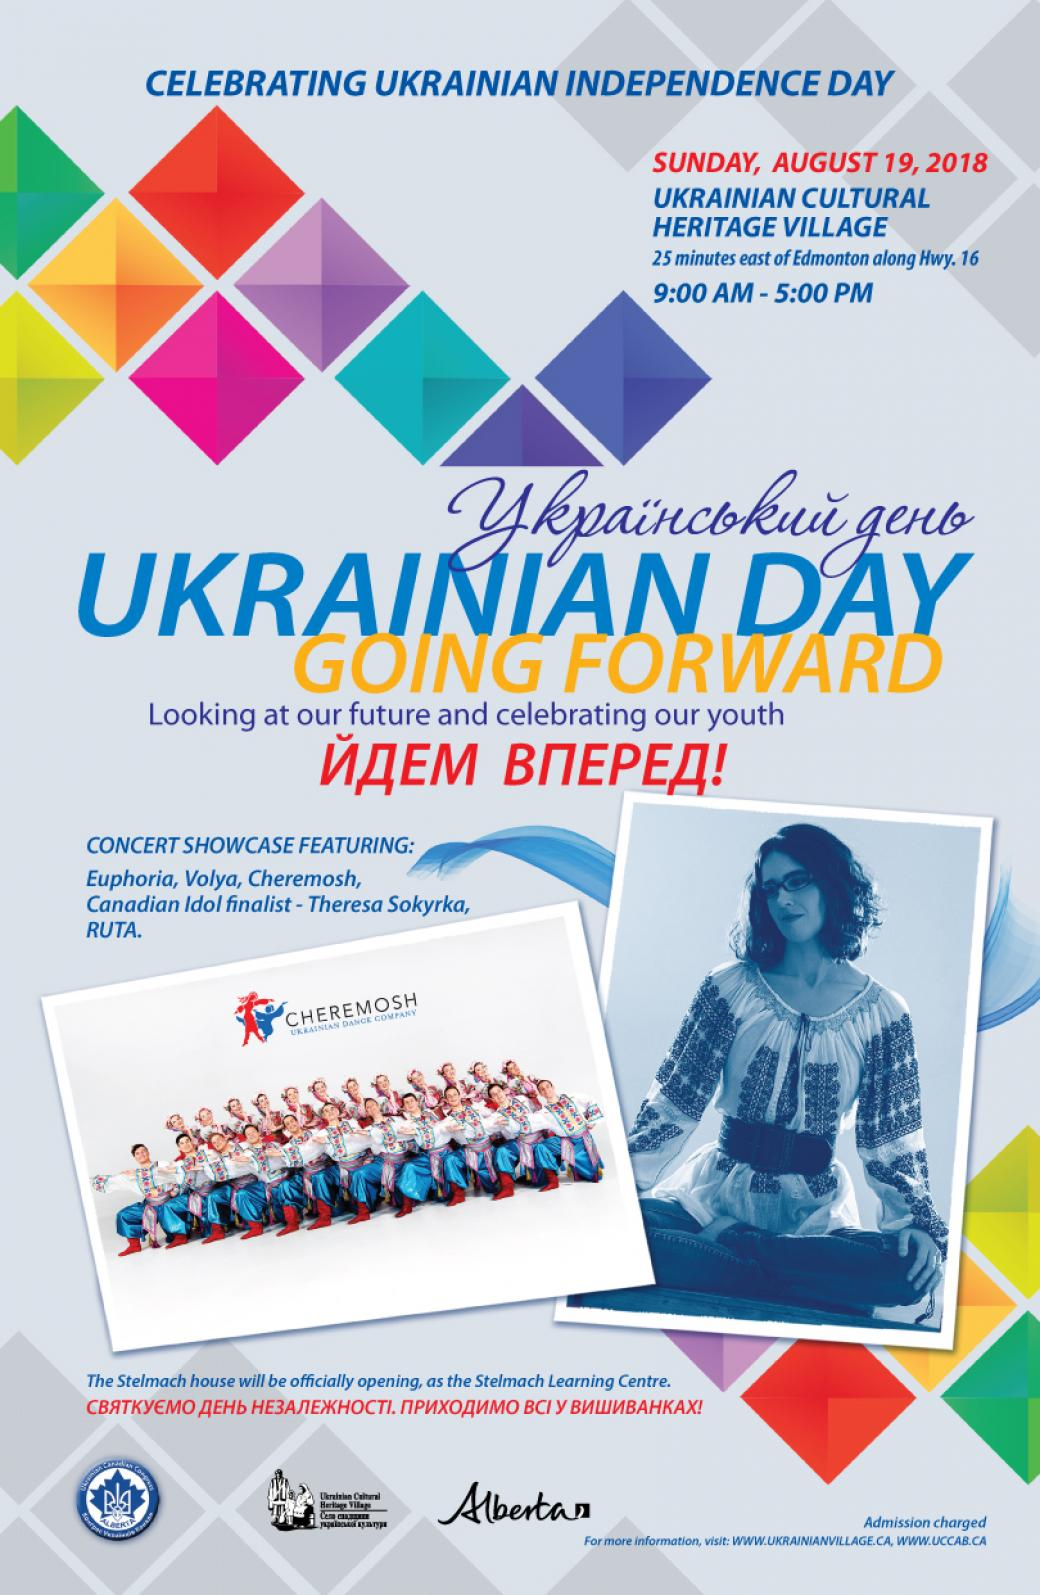 Volunteers Needed for Ukrainian Day 2018